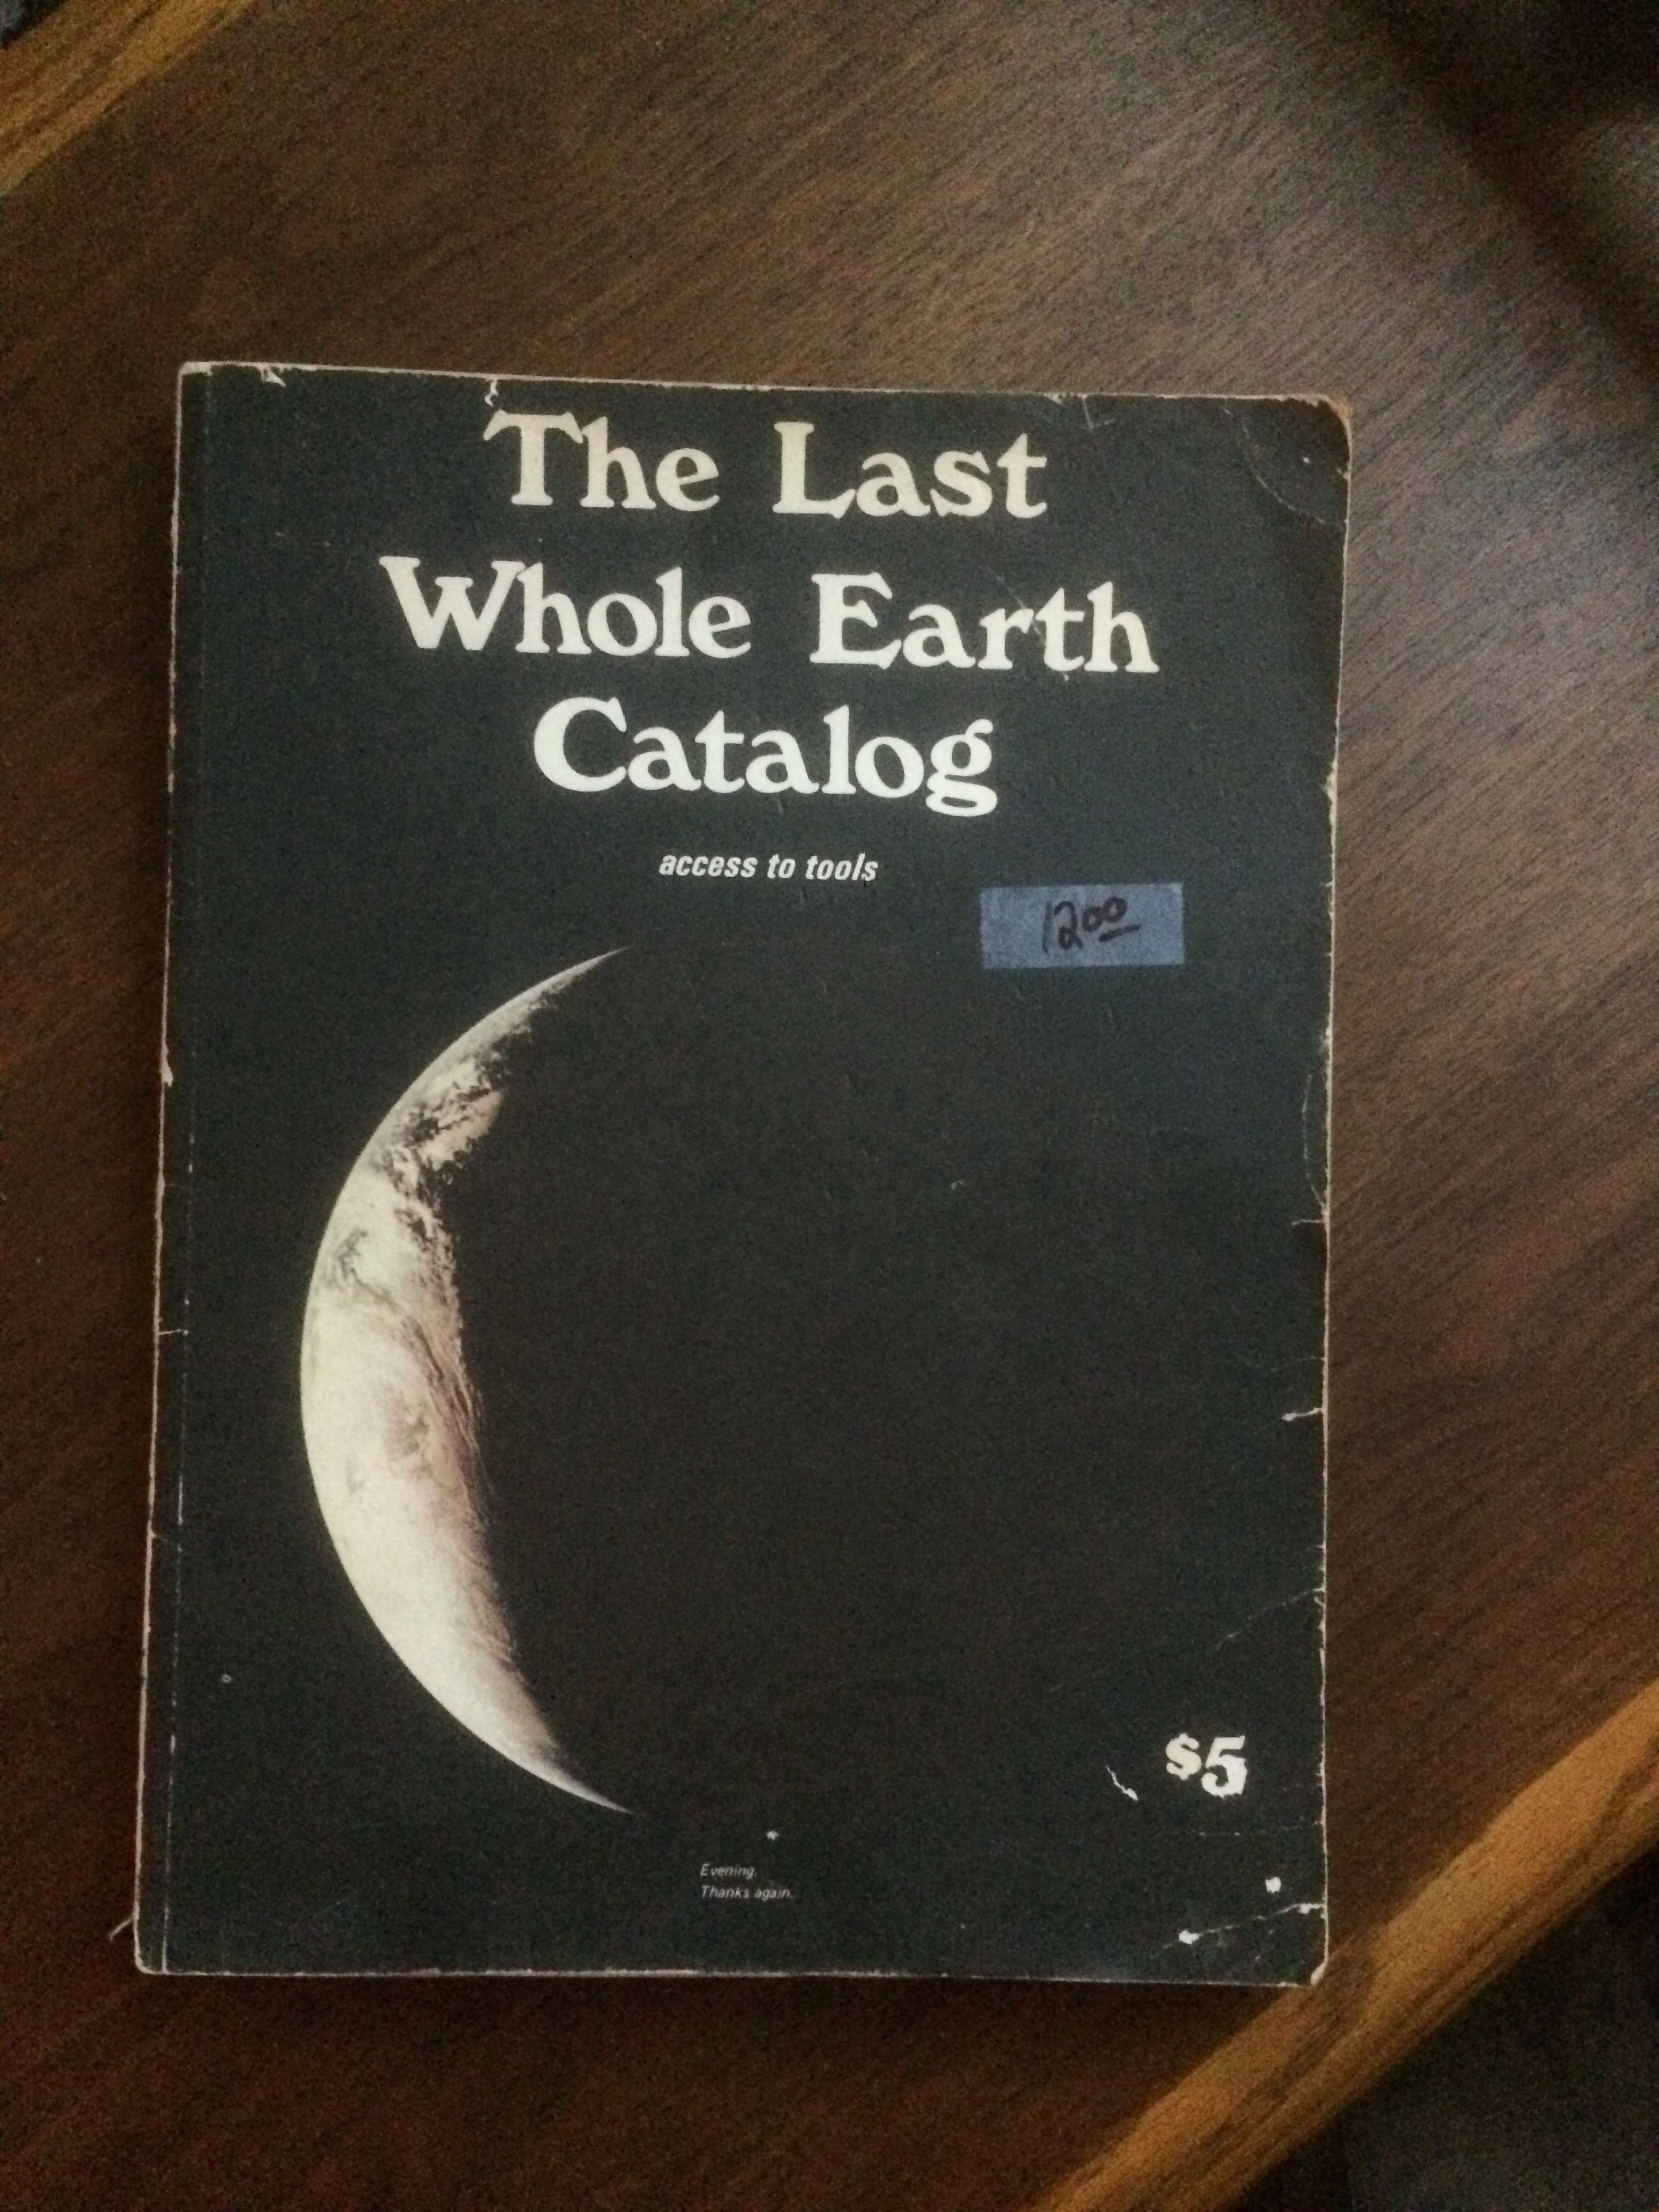 The Last Whole Earth Catalog on my coffe table